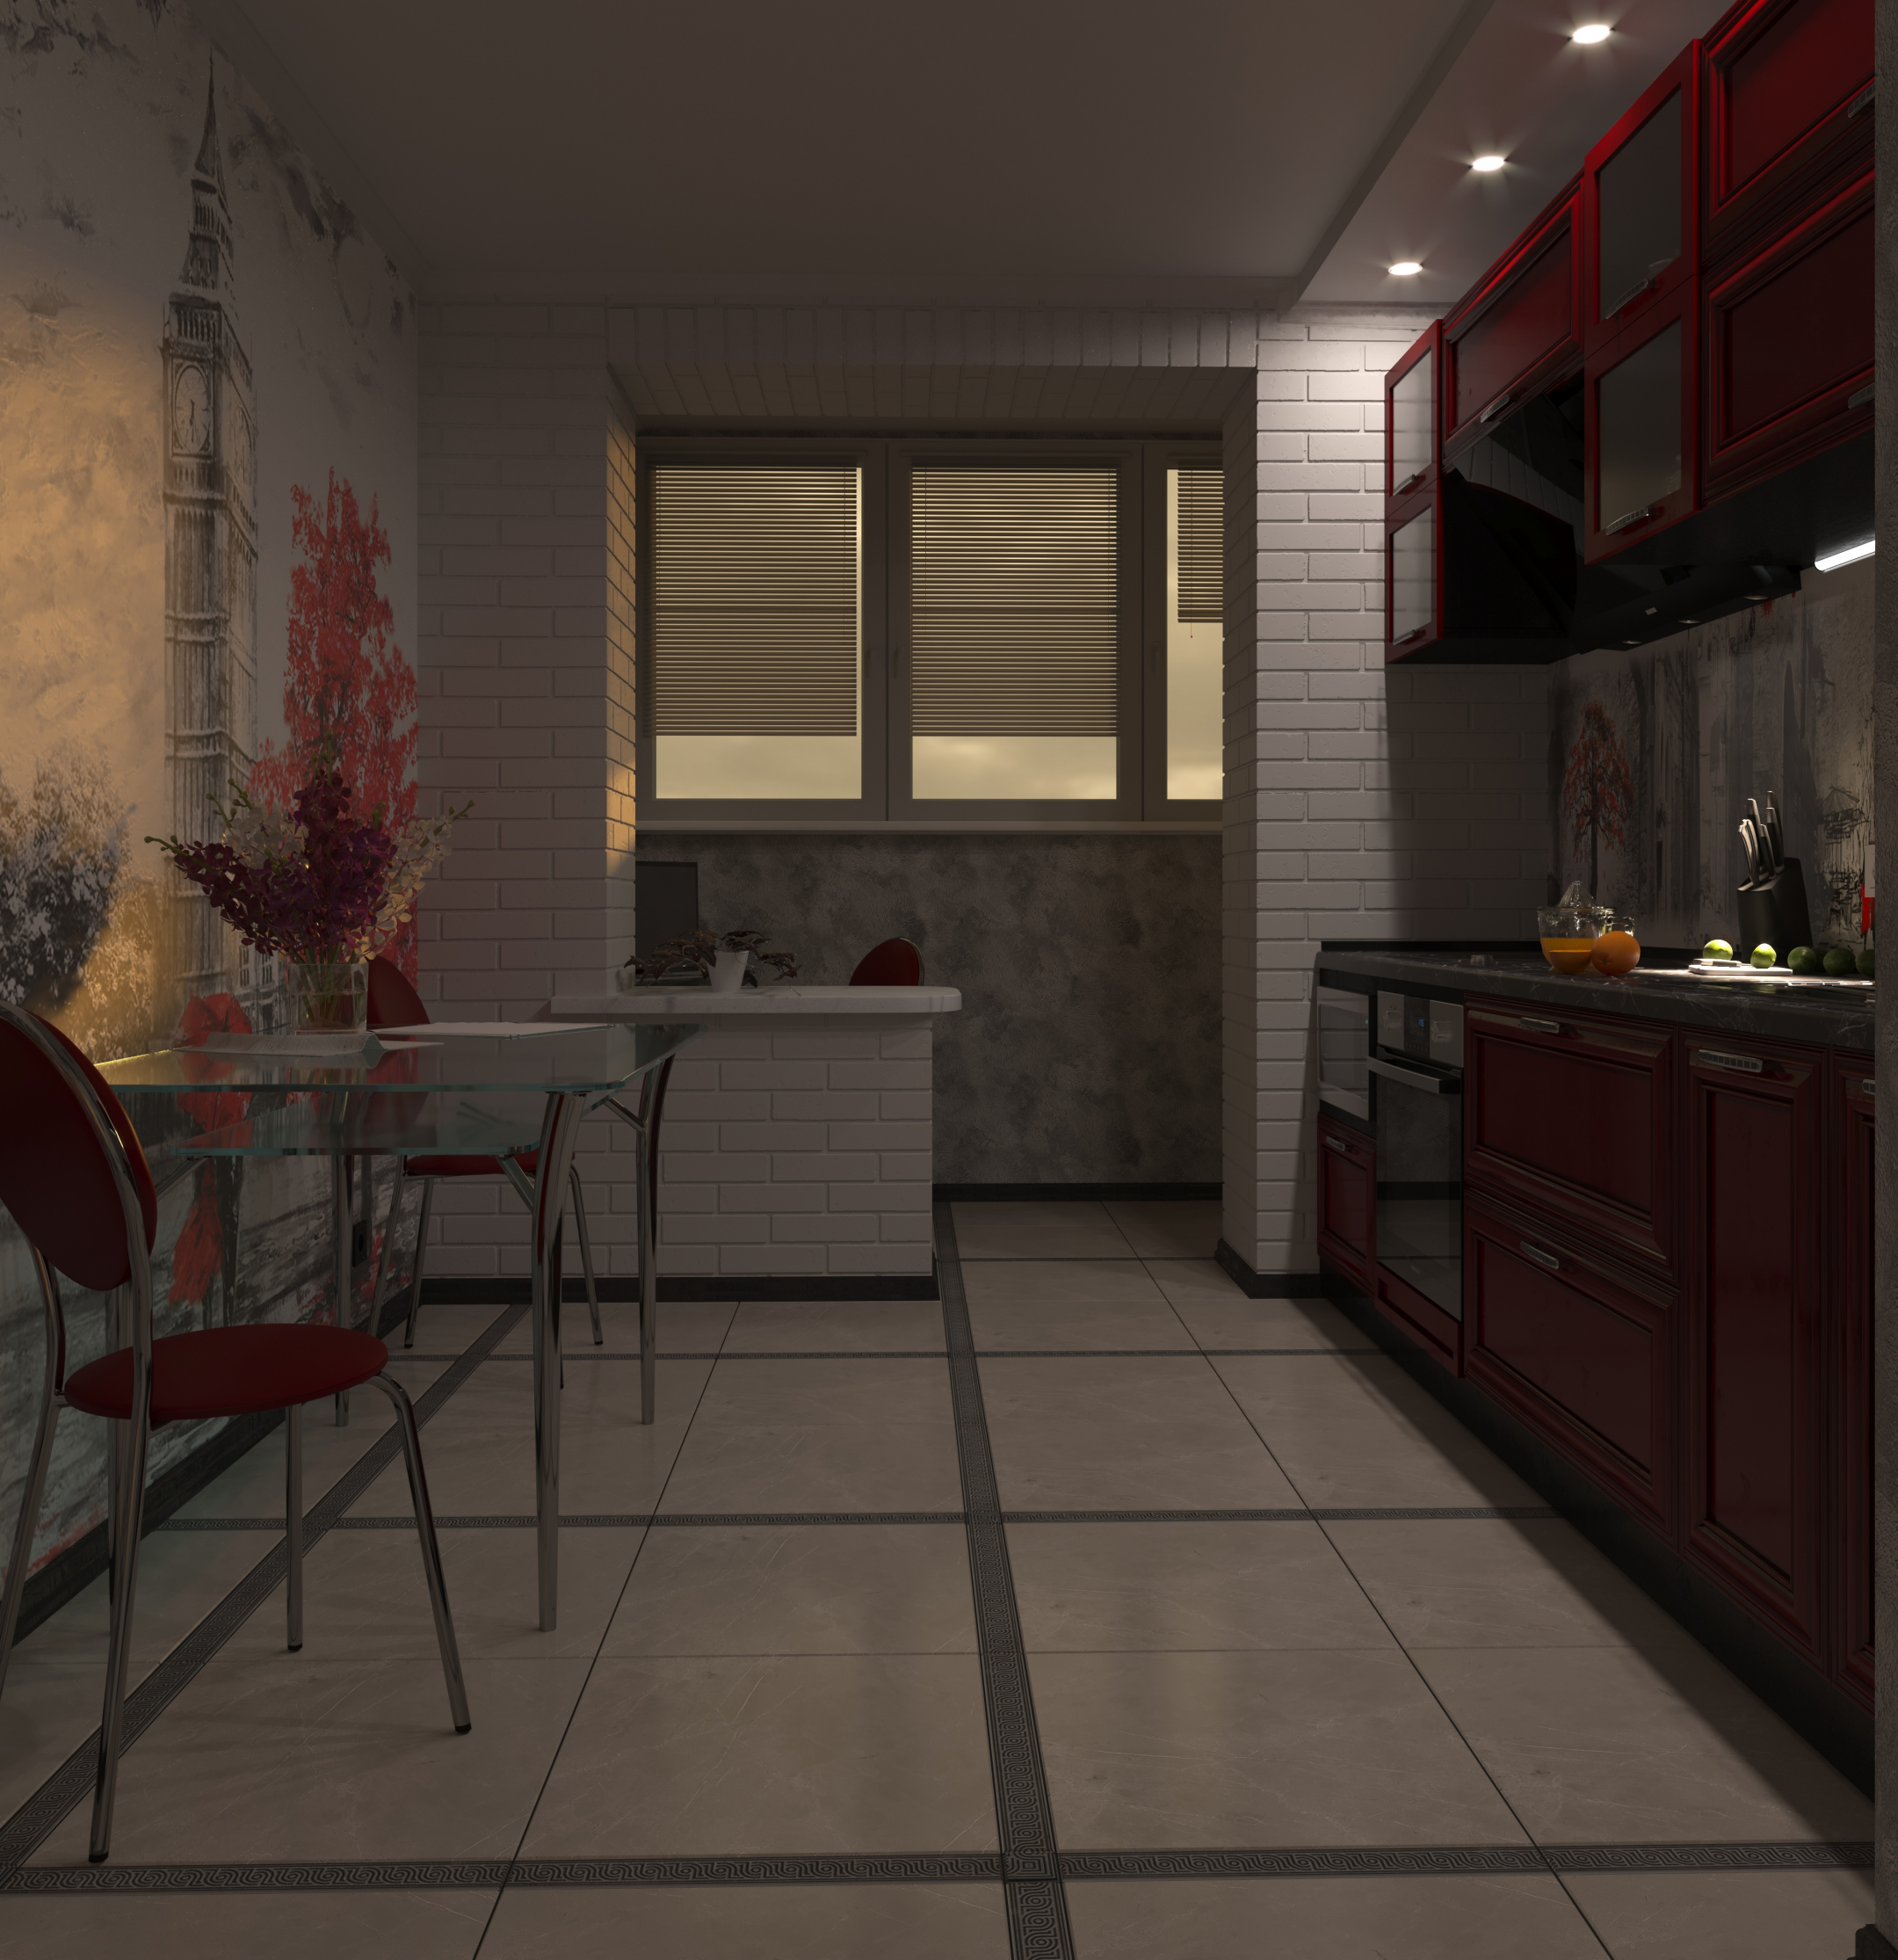 two-room kitchen in 3d max corona render image